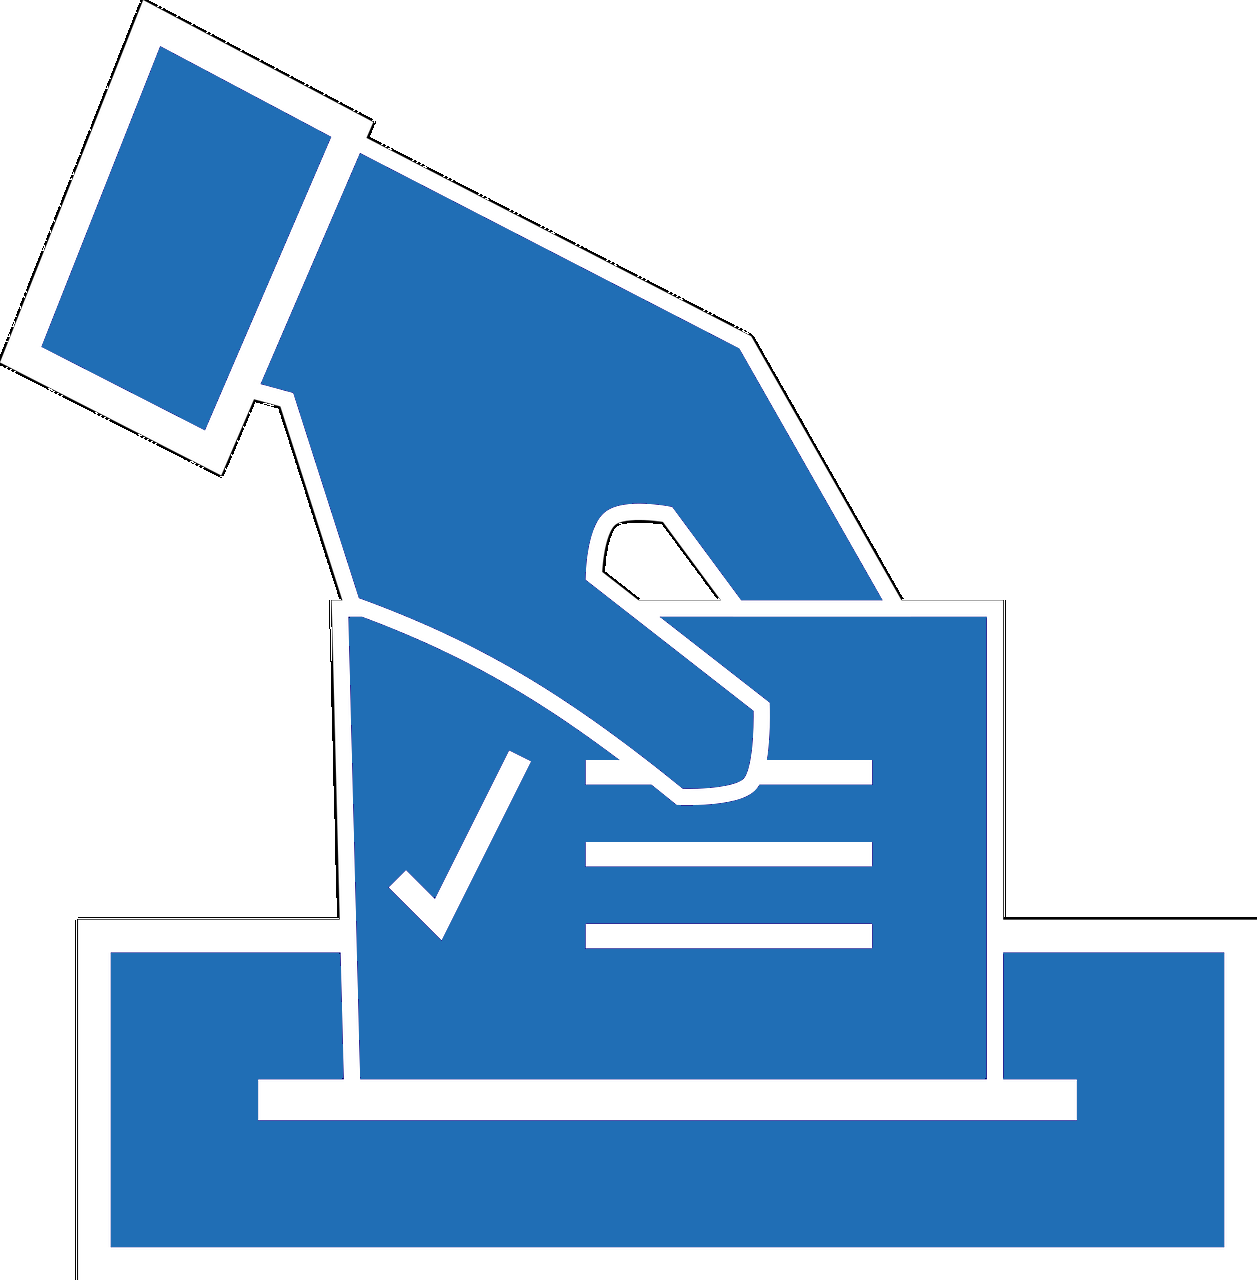 putting a voting card in a box